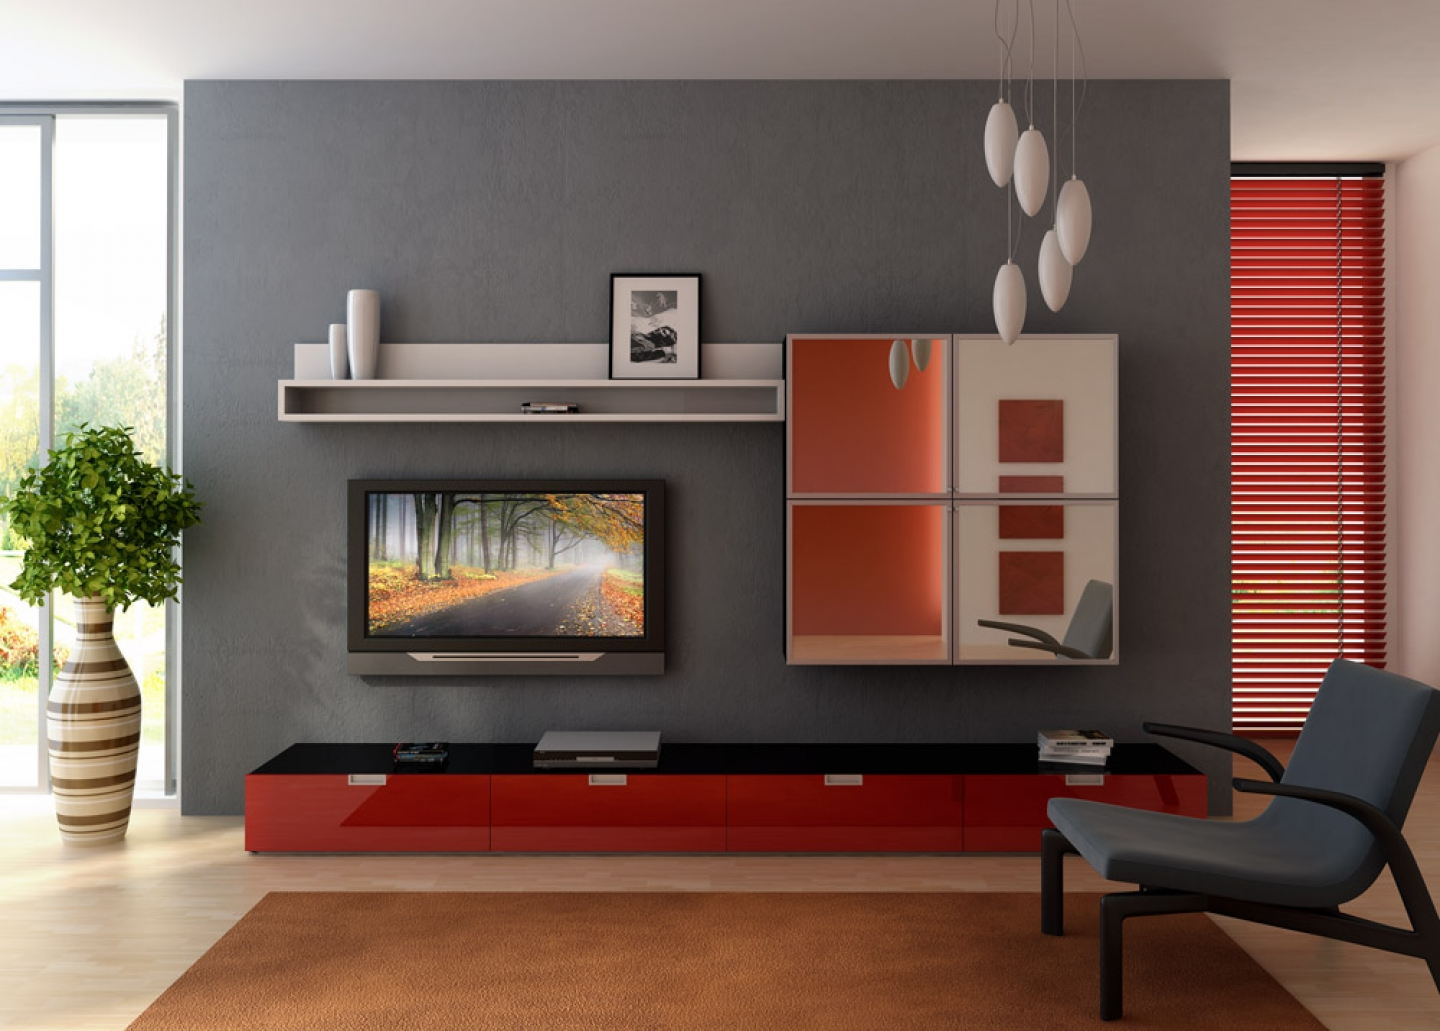 Living room ideas for small spaces | Home Design Ideas 2018